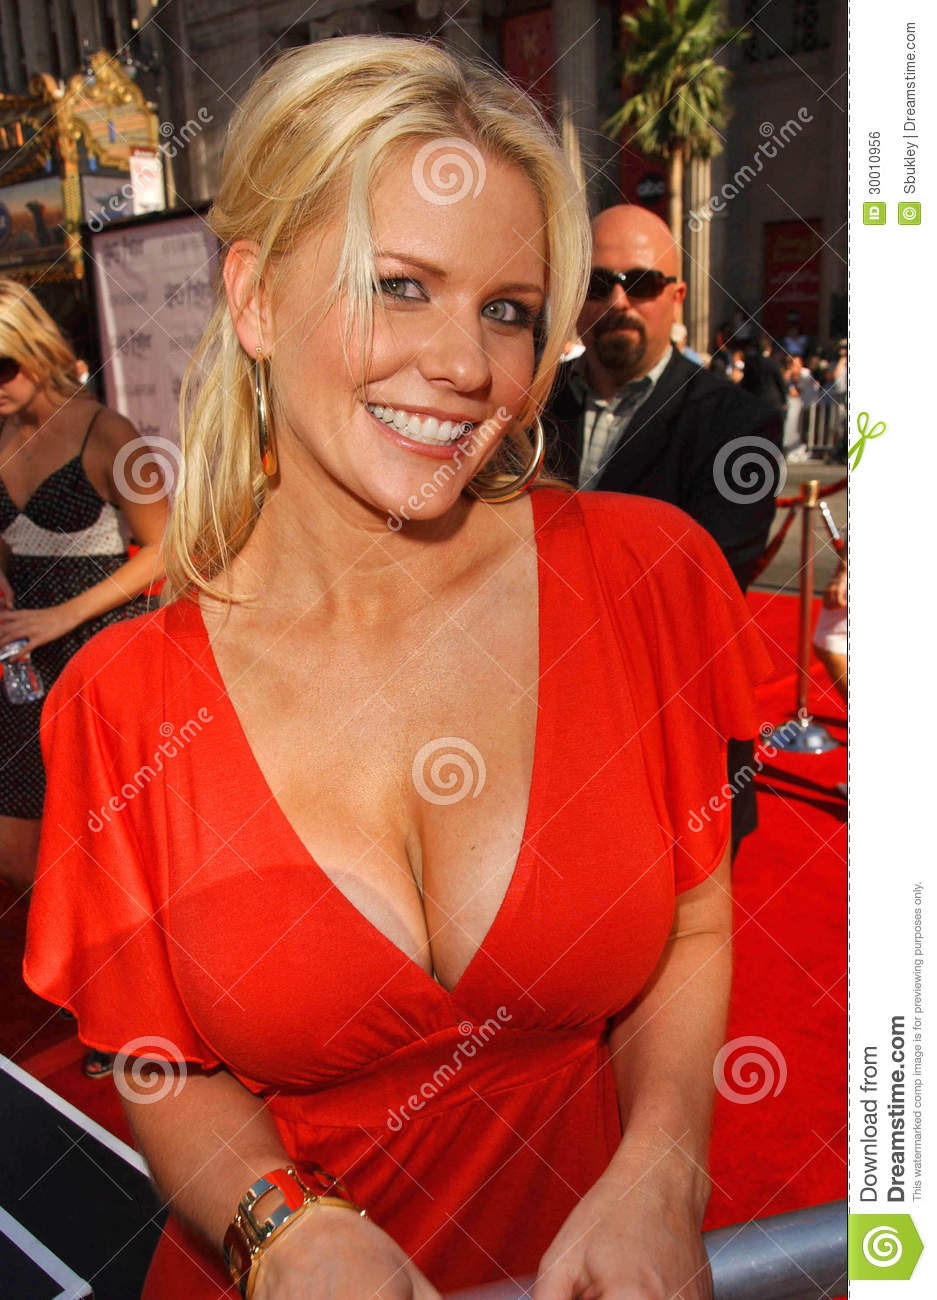 Boobs Pics Carrie Keagan naked photo 2017